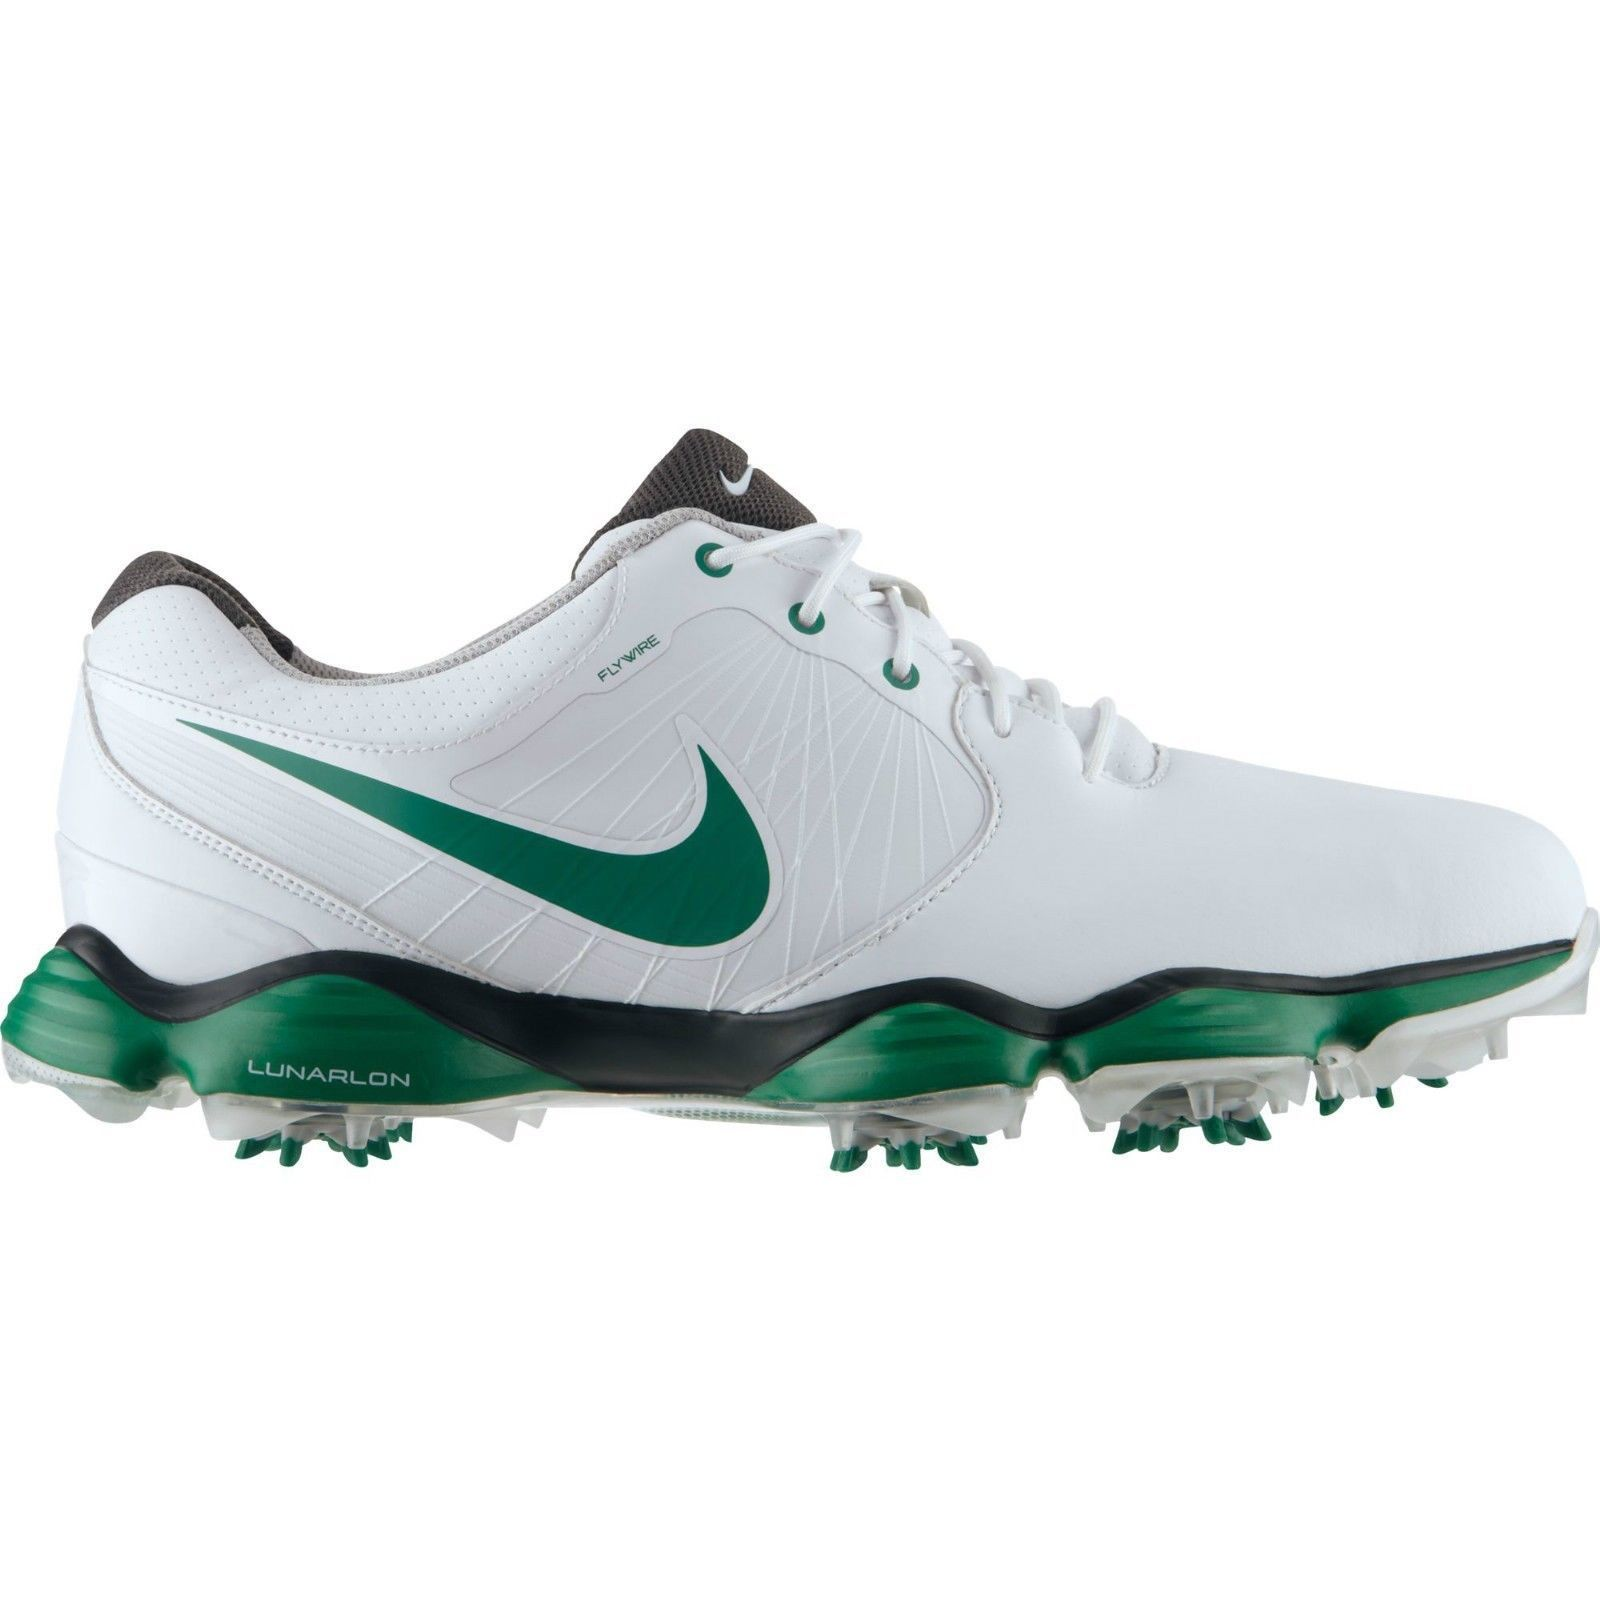 edaeeaf36a03 Shop Nike Men s Lunar Control II SL Limited Edition Masters White  Green Golf  Shoes - Free Shipping Today - Overstock - 9773019